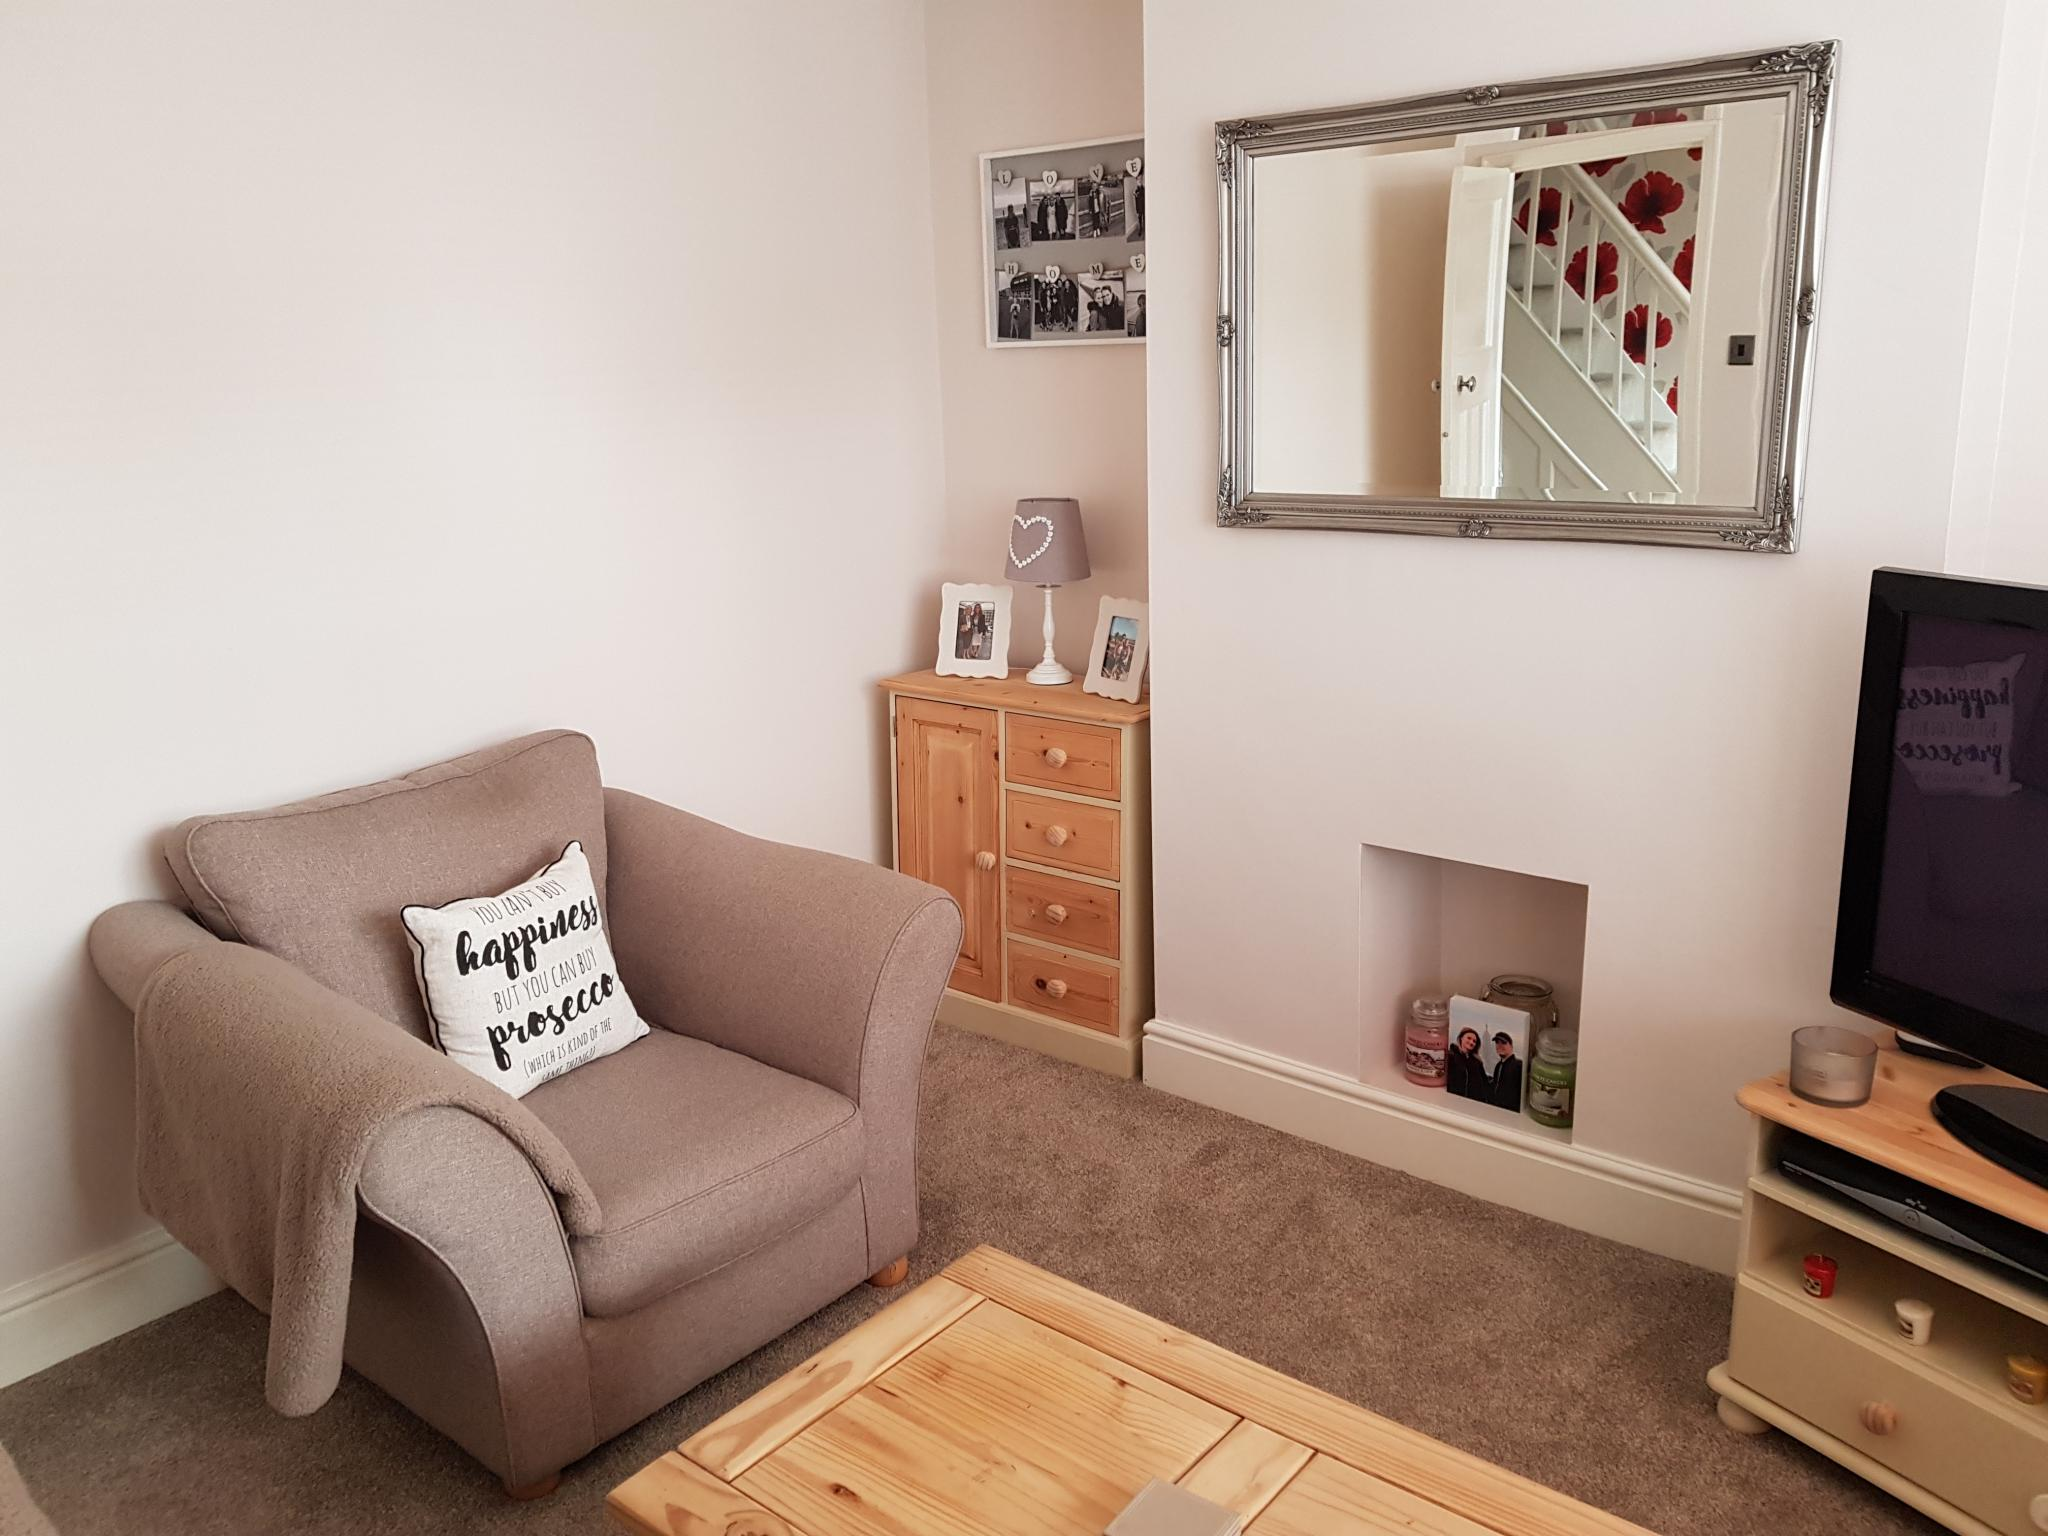 3 bedroom mid terraced house SSTC in Ipswich - 4